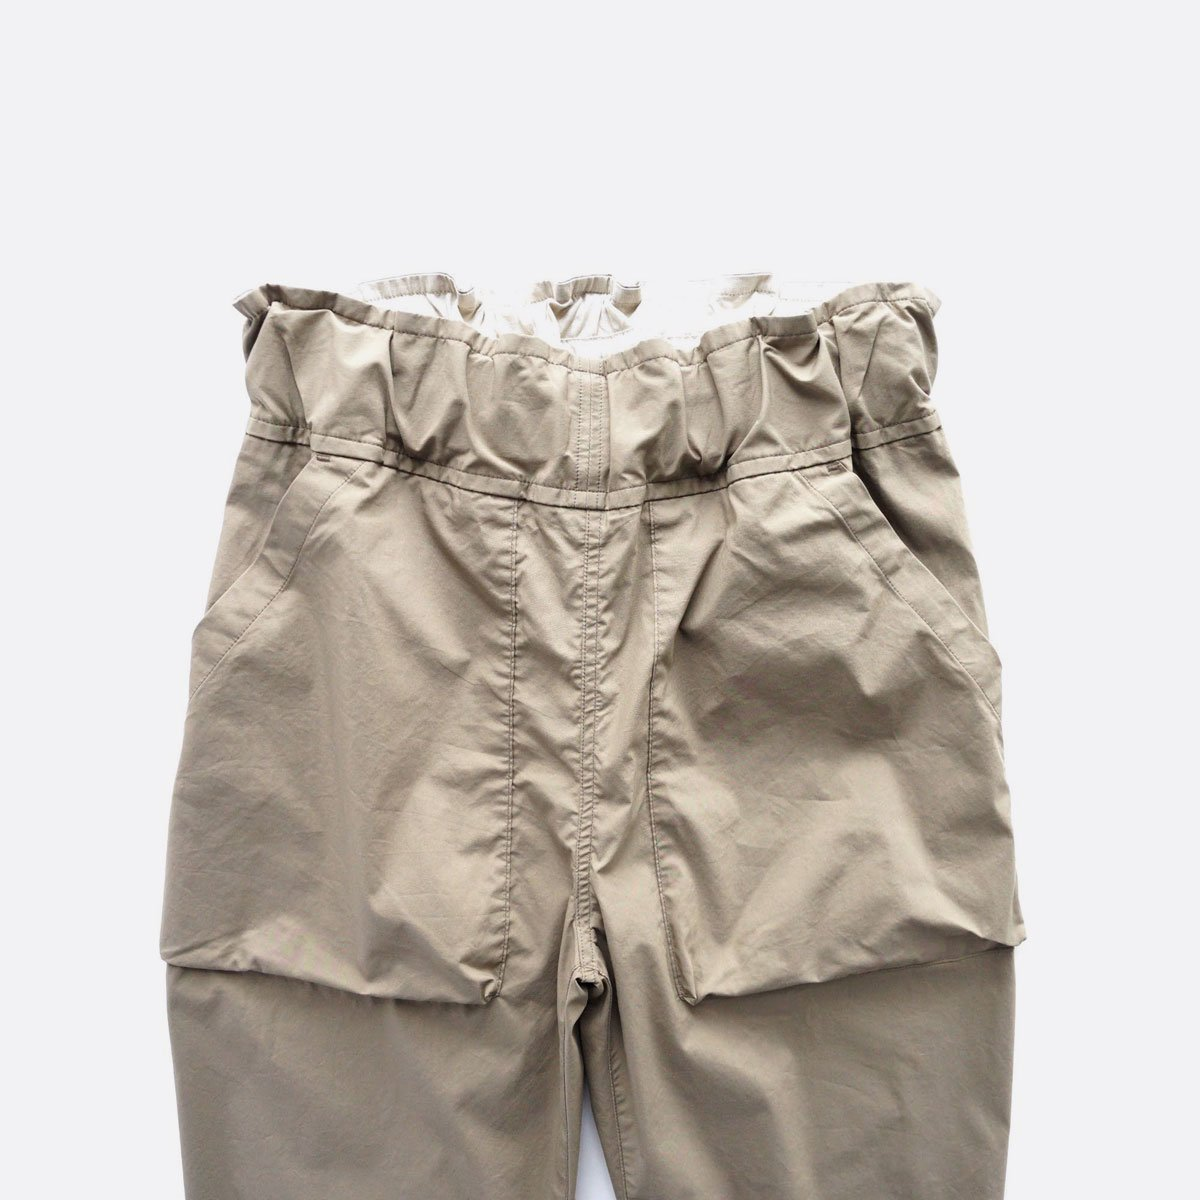 FIRMUM COTTON & POLYESTER STRETCH TYPEWRITER EASY TAPERED PANTS (LIGHT KHAKI)3